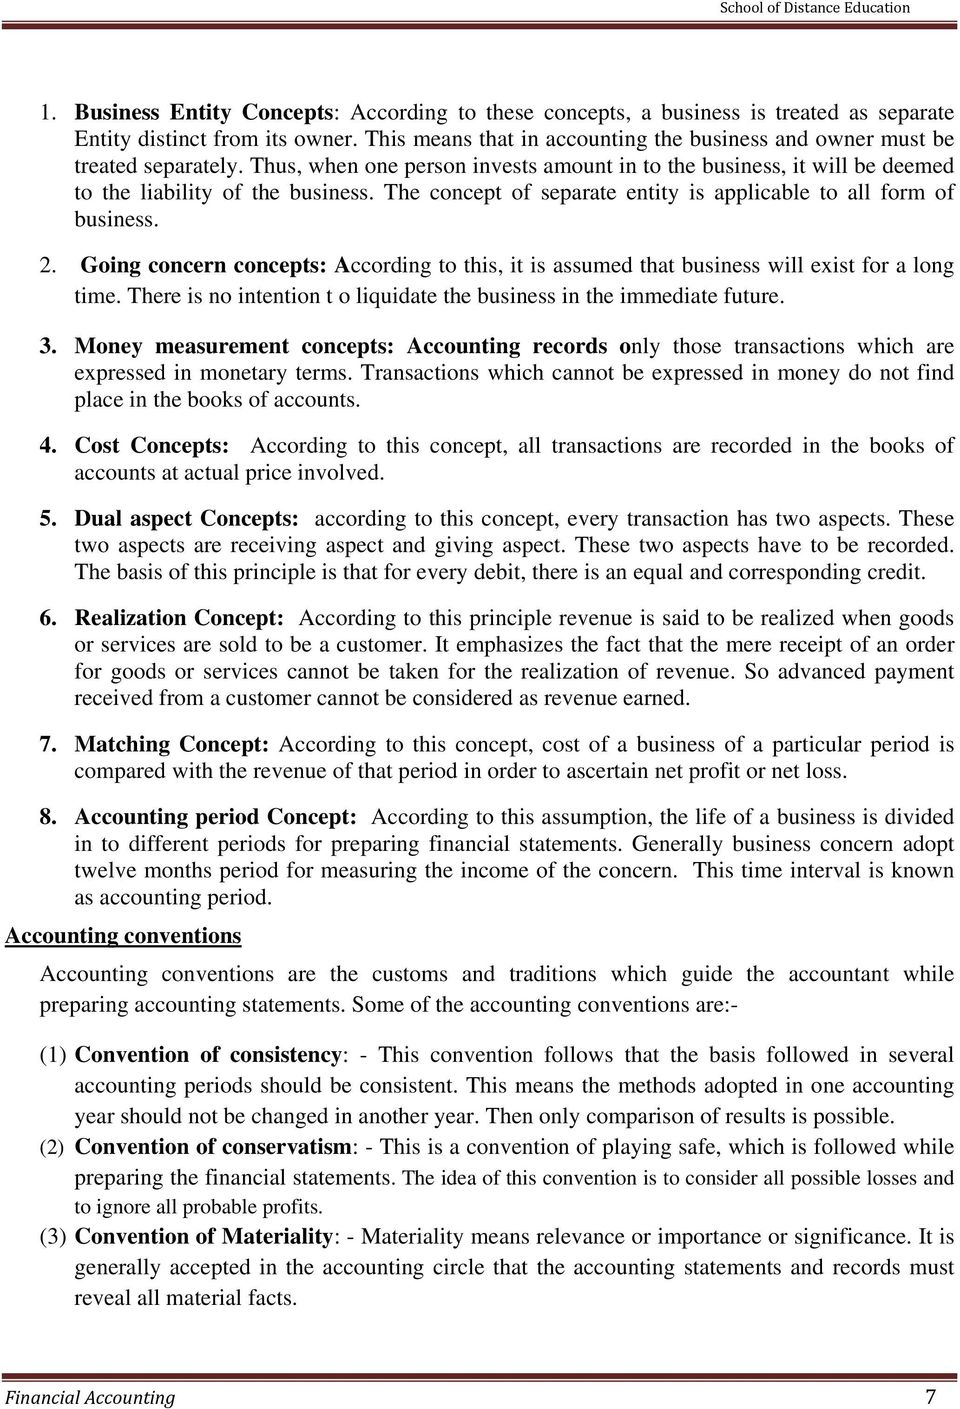 FINANCIAL ACCOUNTING - PDF